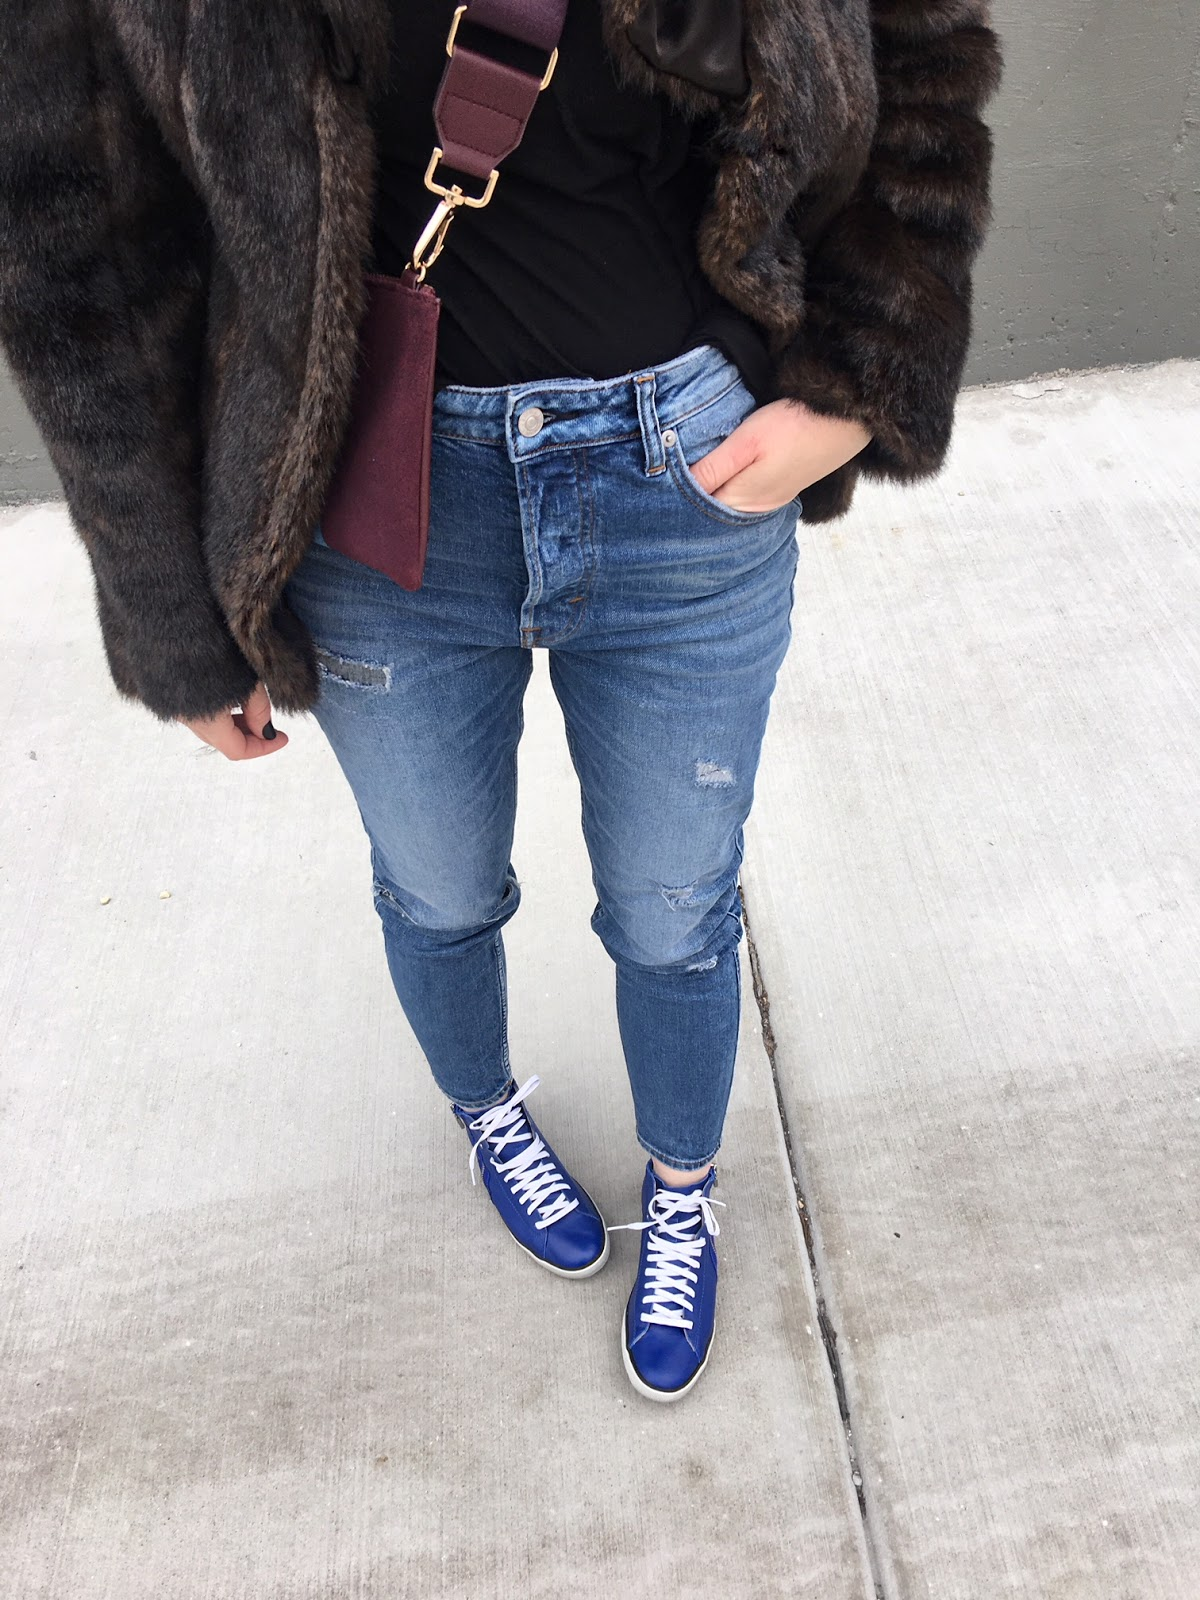 Blue sneakers & new ripped jeans